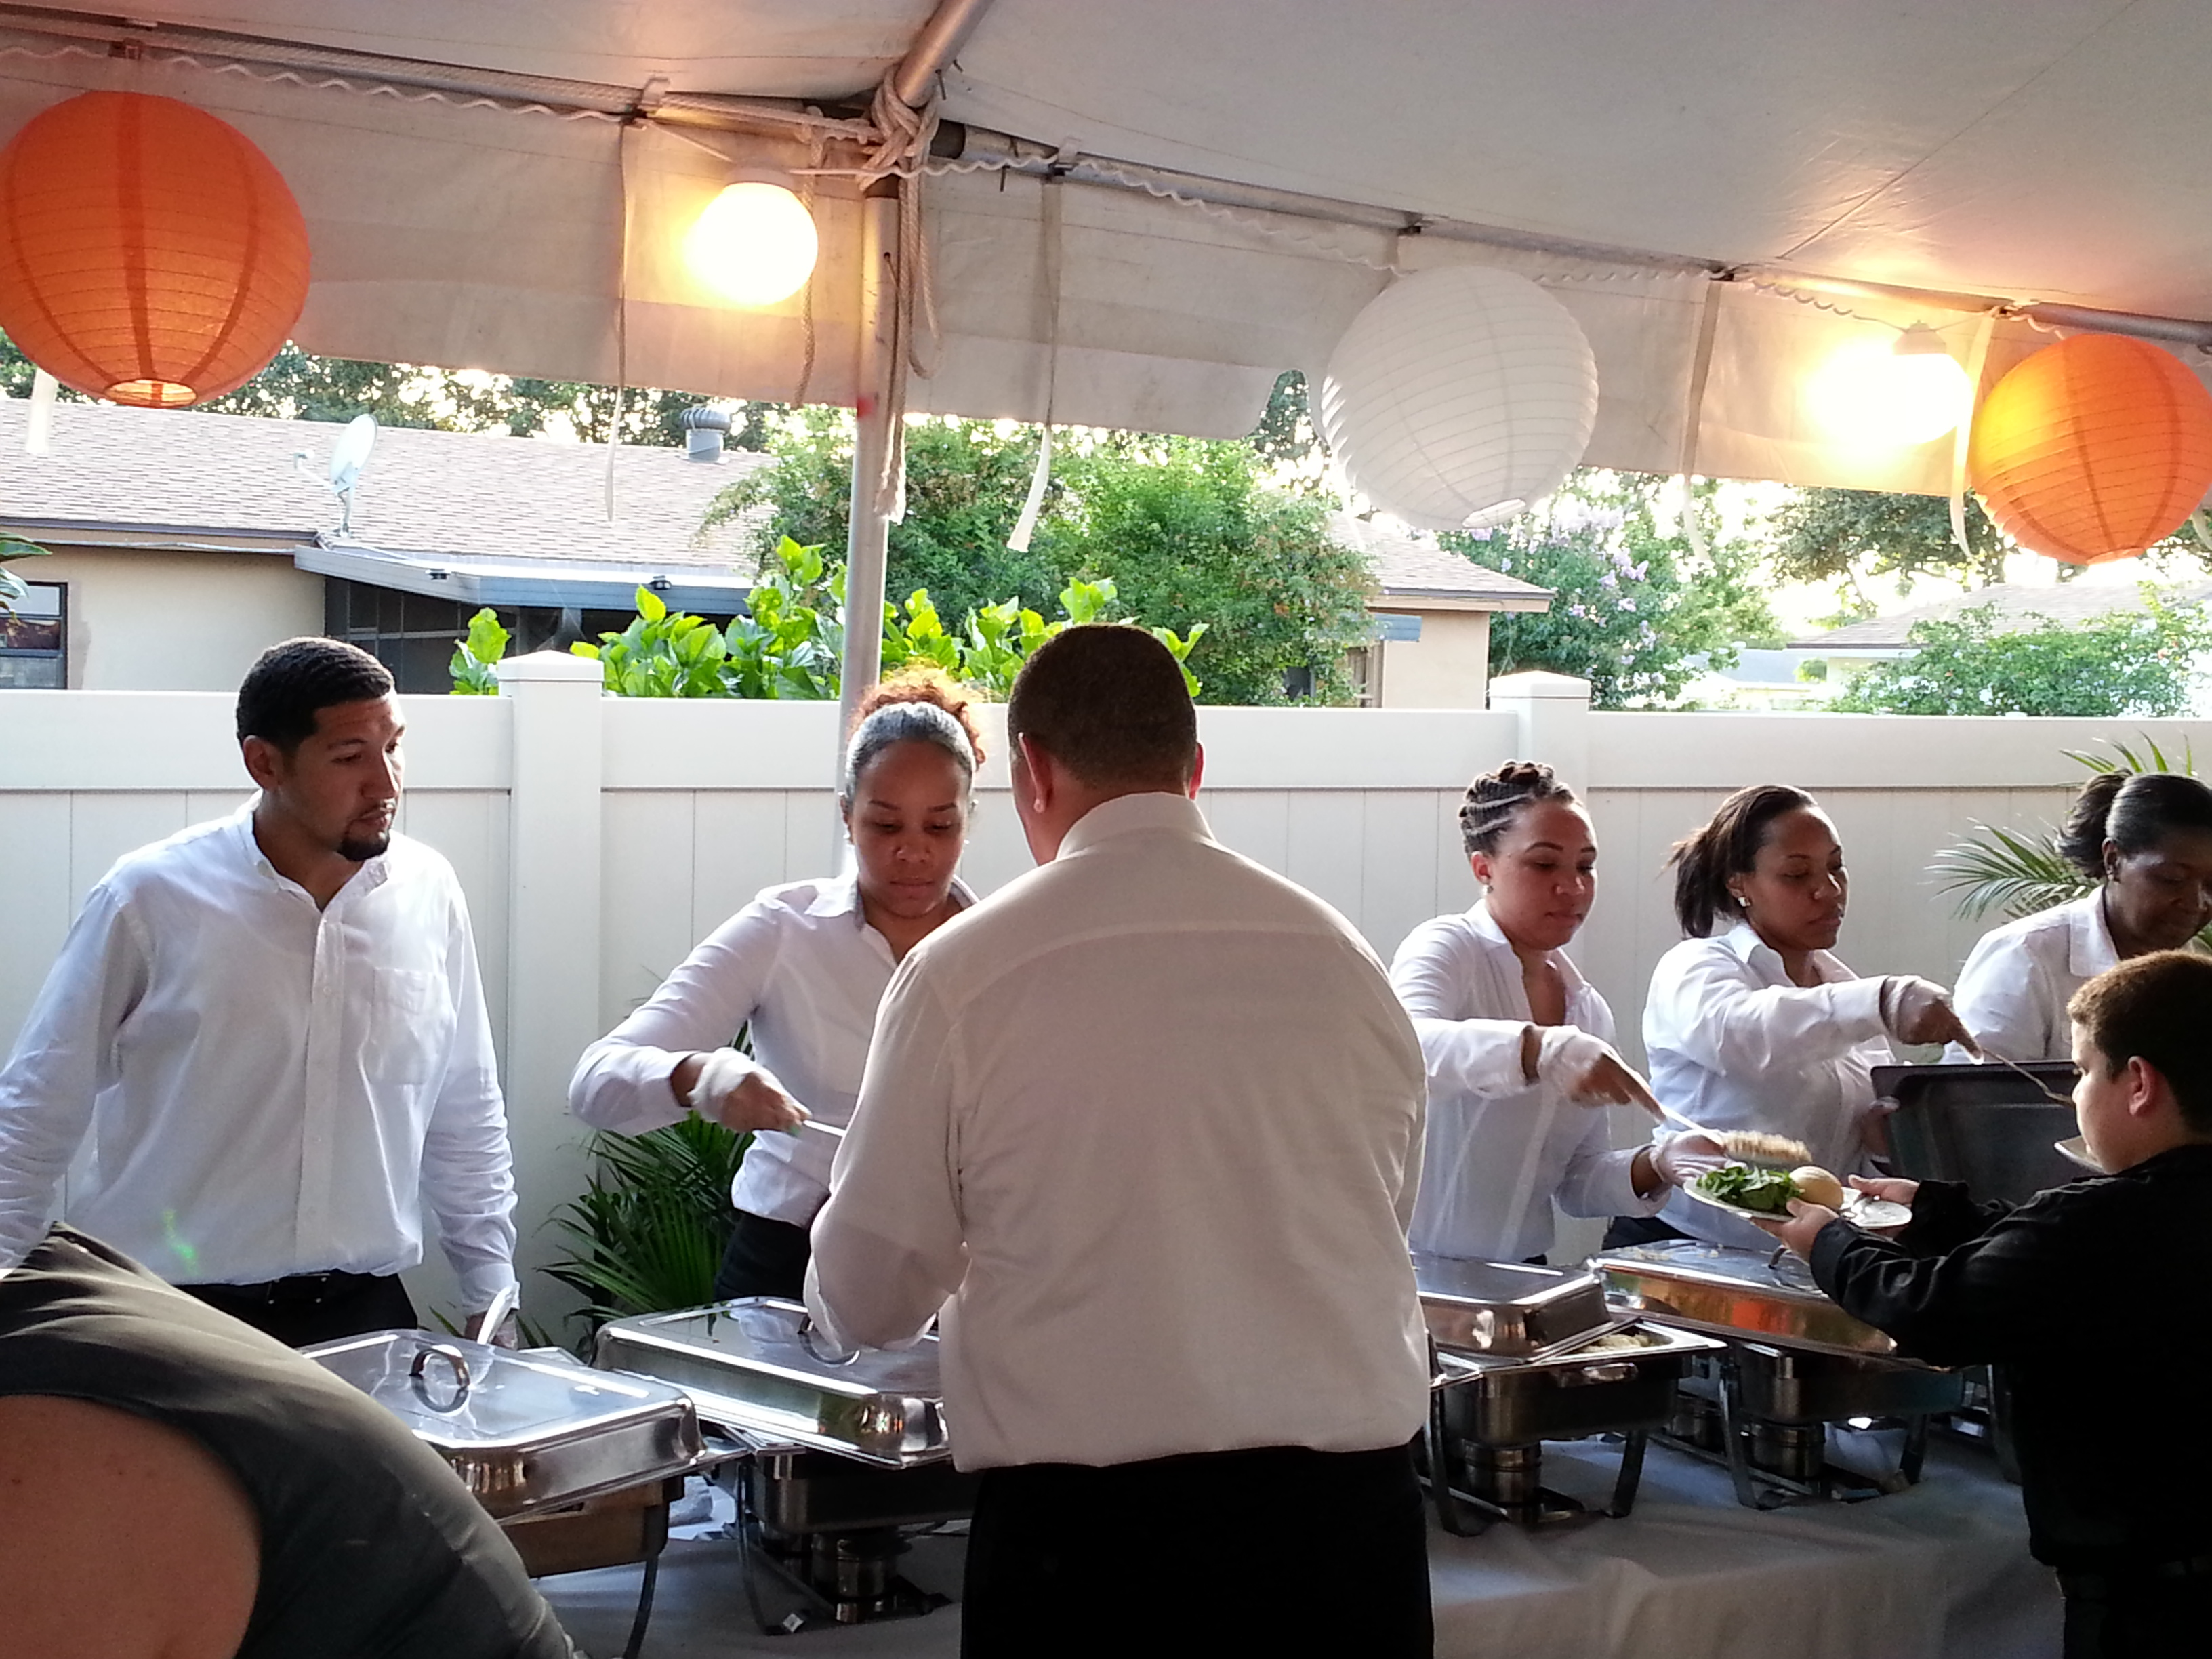 Private Residence Catering  West Palm Beach, FL